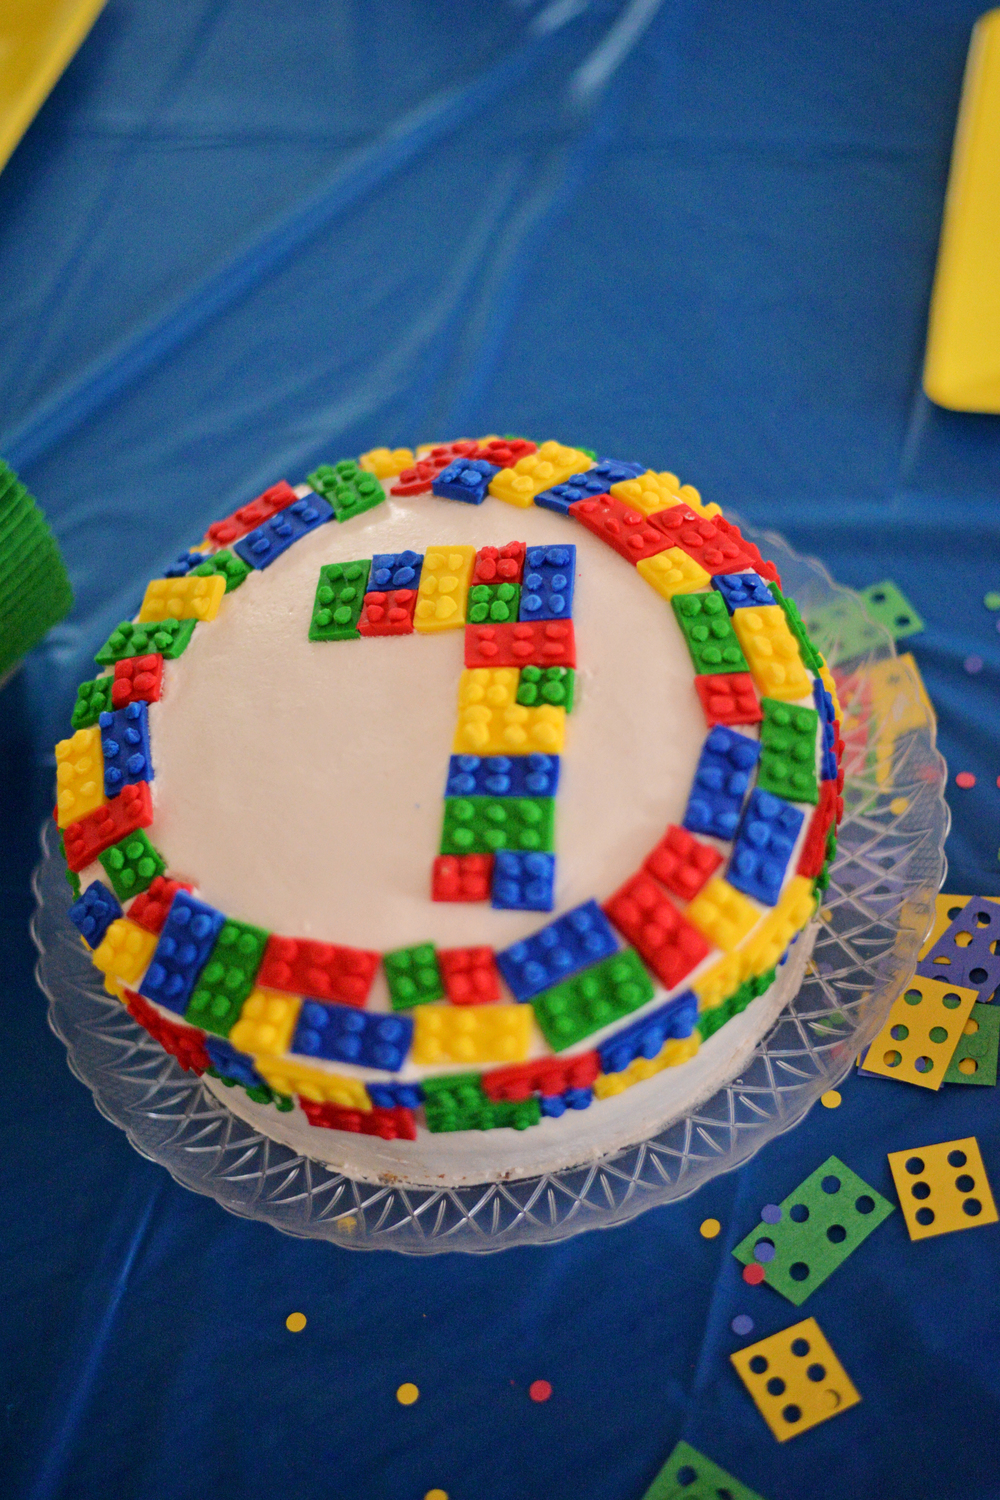 Things That Make You Love And Hate Lego Birthday Cake Walmart